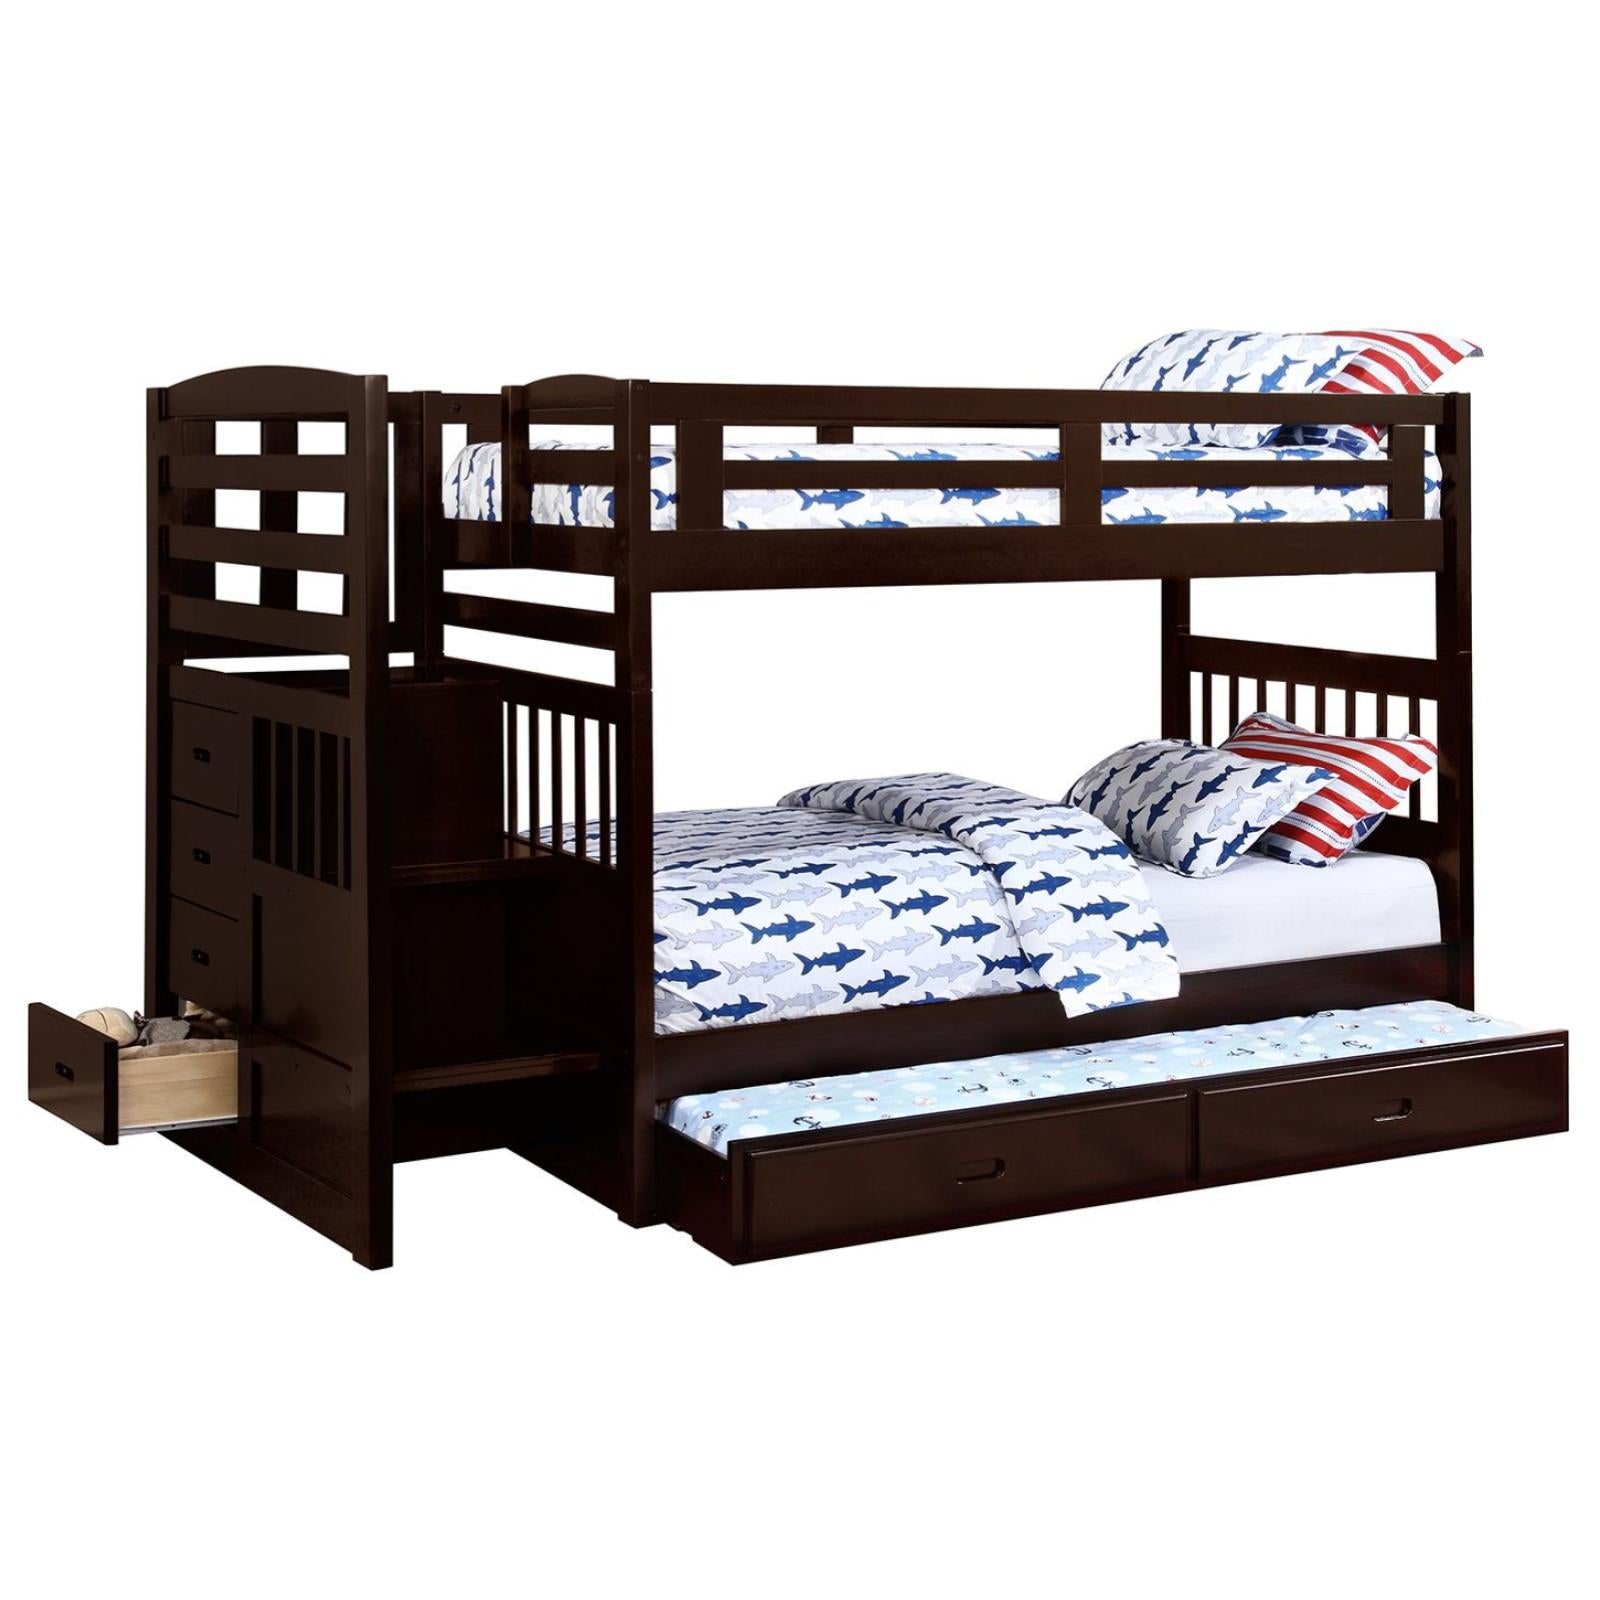 Dublin Twintwin Bunk Bed With Staircase & Trundle